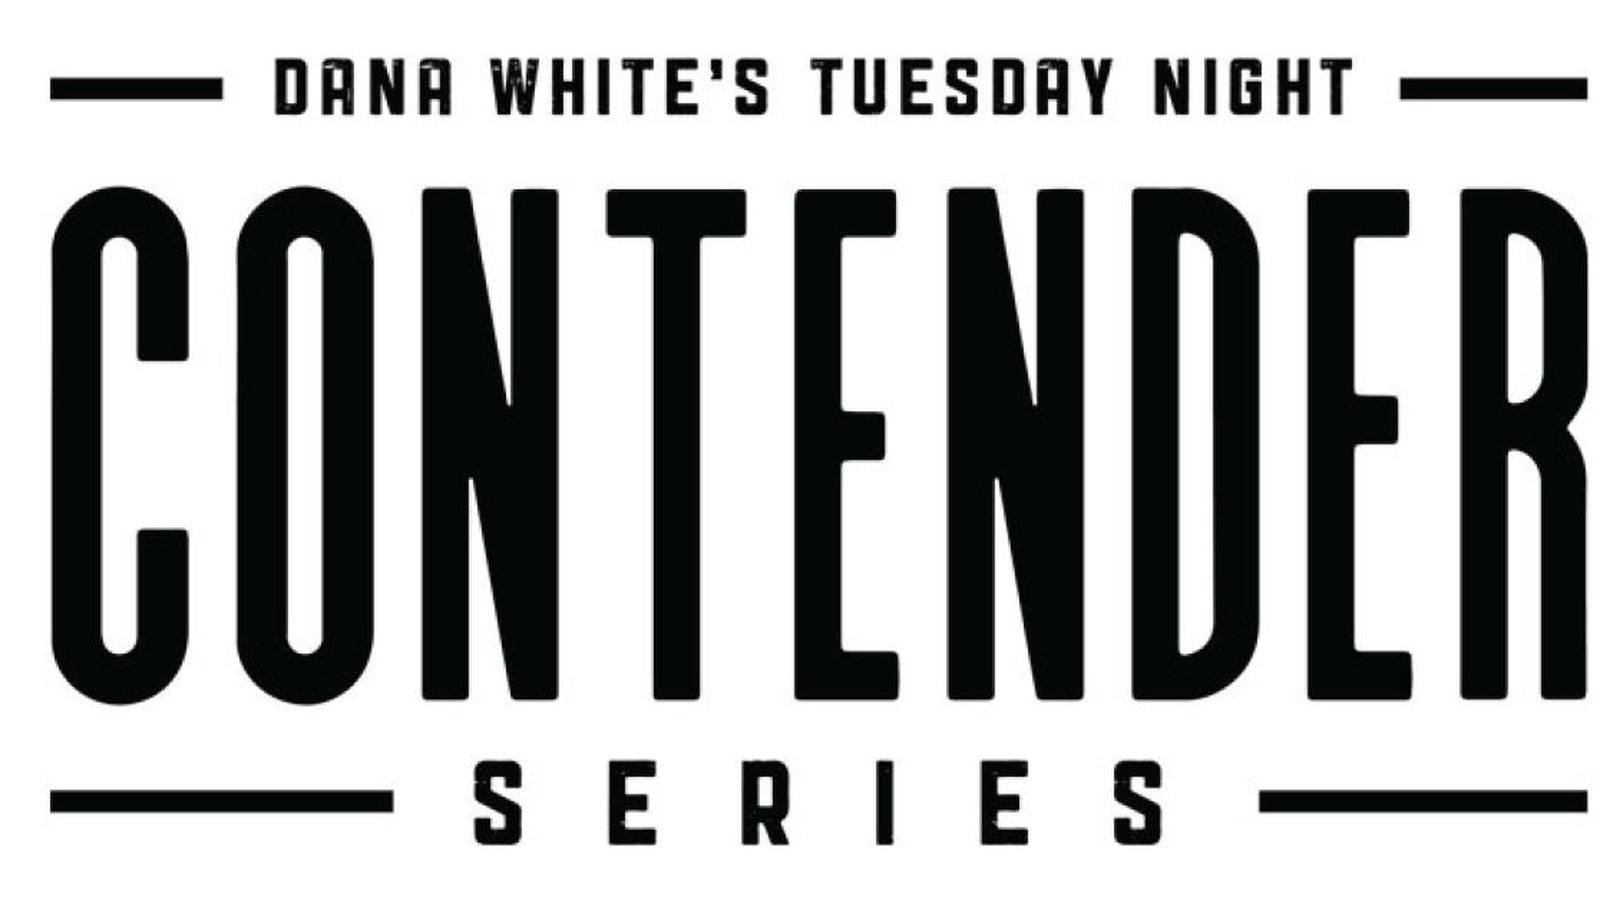 UFC 'Contender Series' 5 results: Live stream play-by-play updates -  MMAmania.com